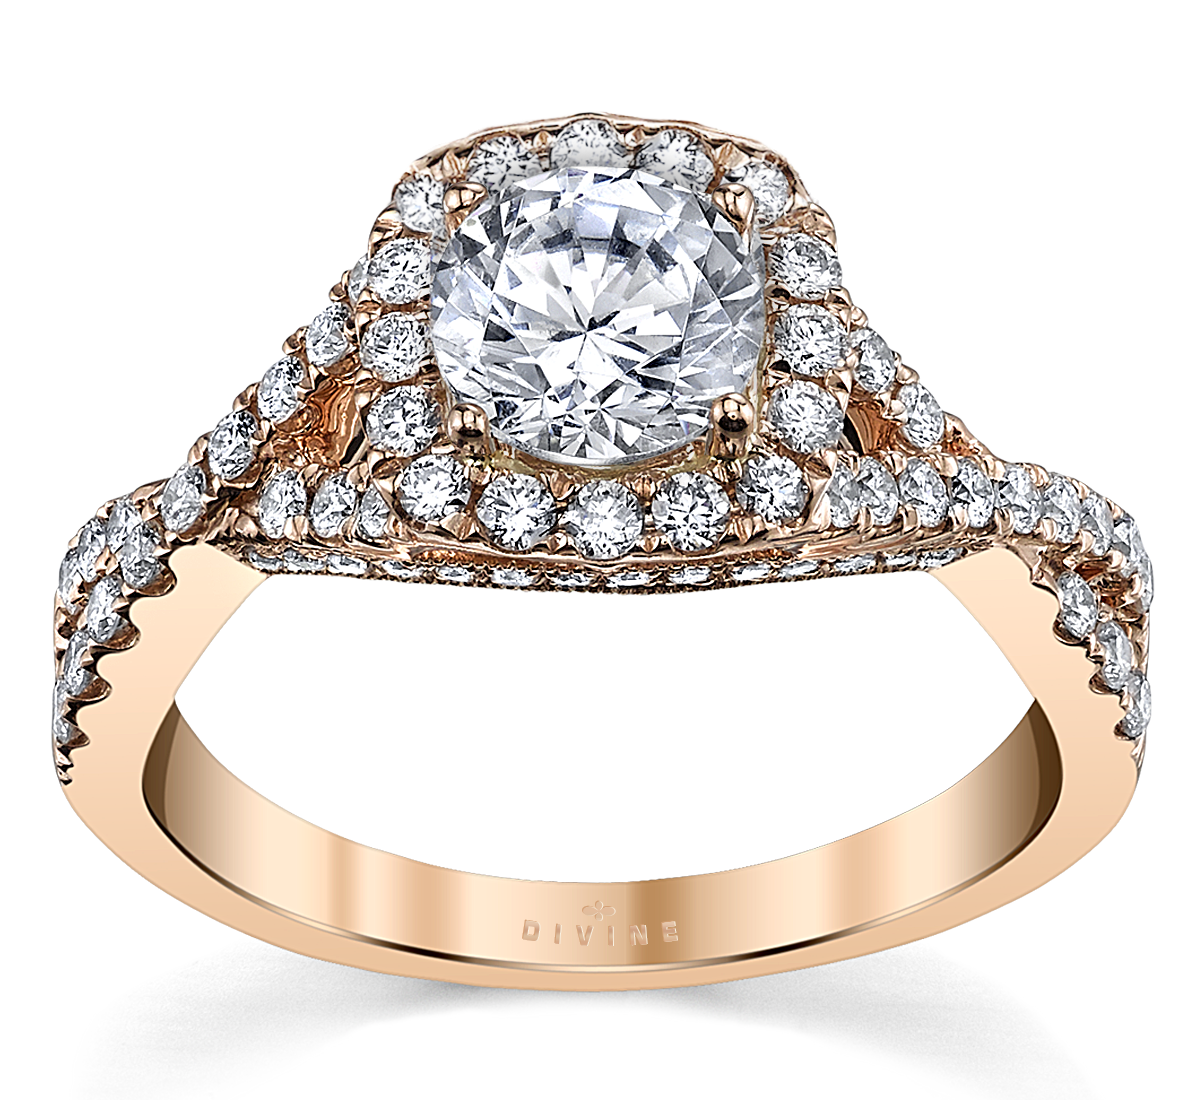 14K Rose Gold Diamond Engagement Ring Setting 1/2 Cttw.